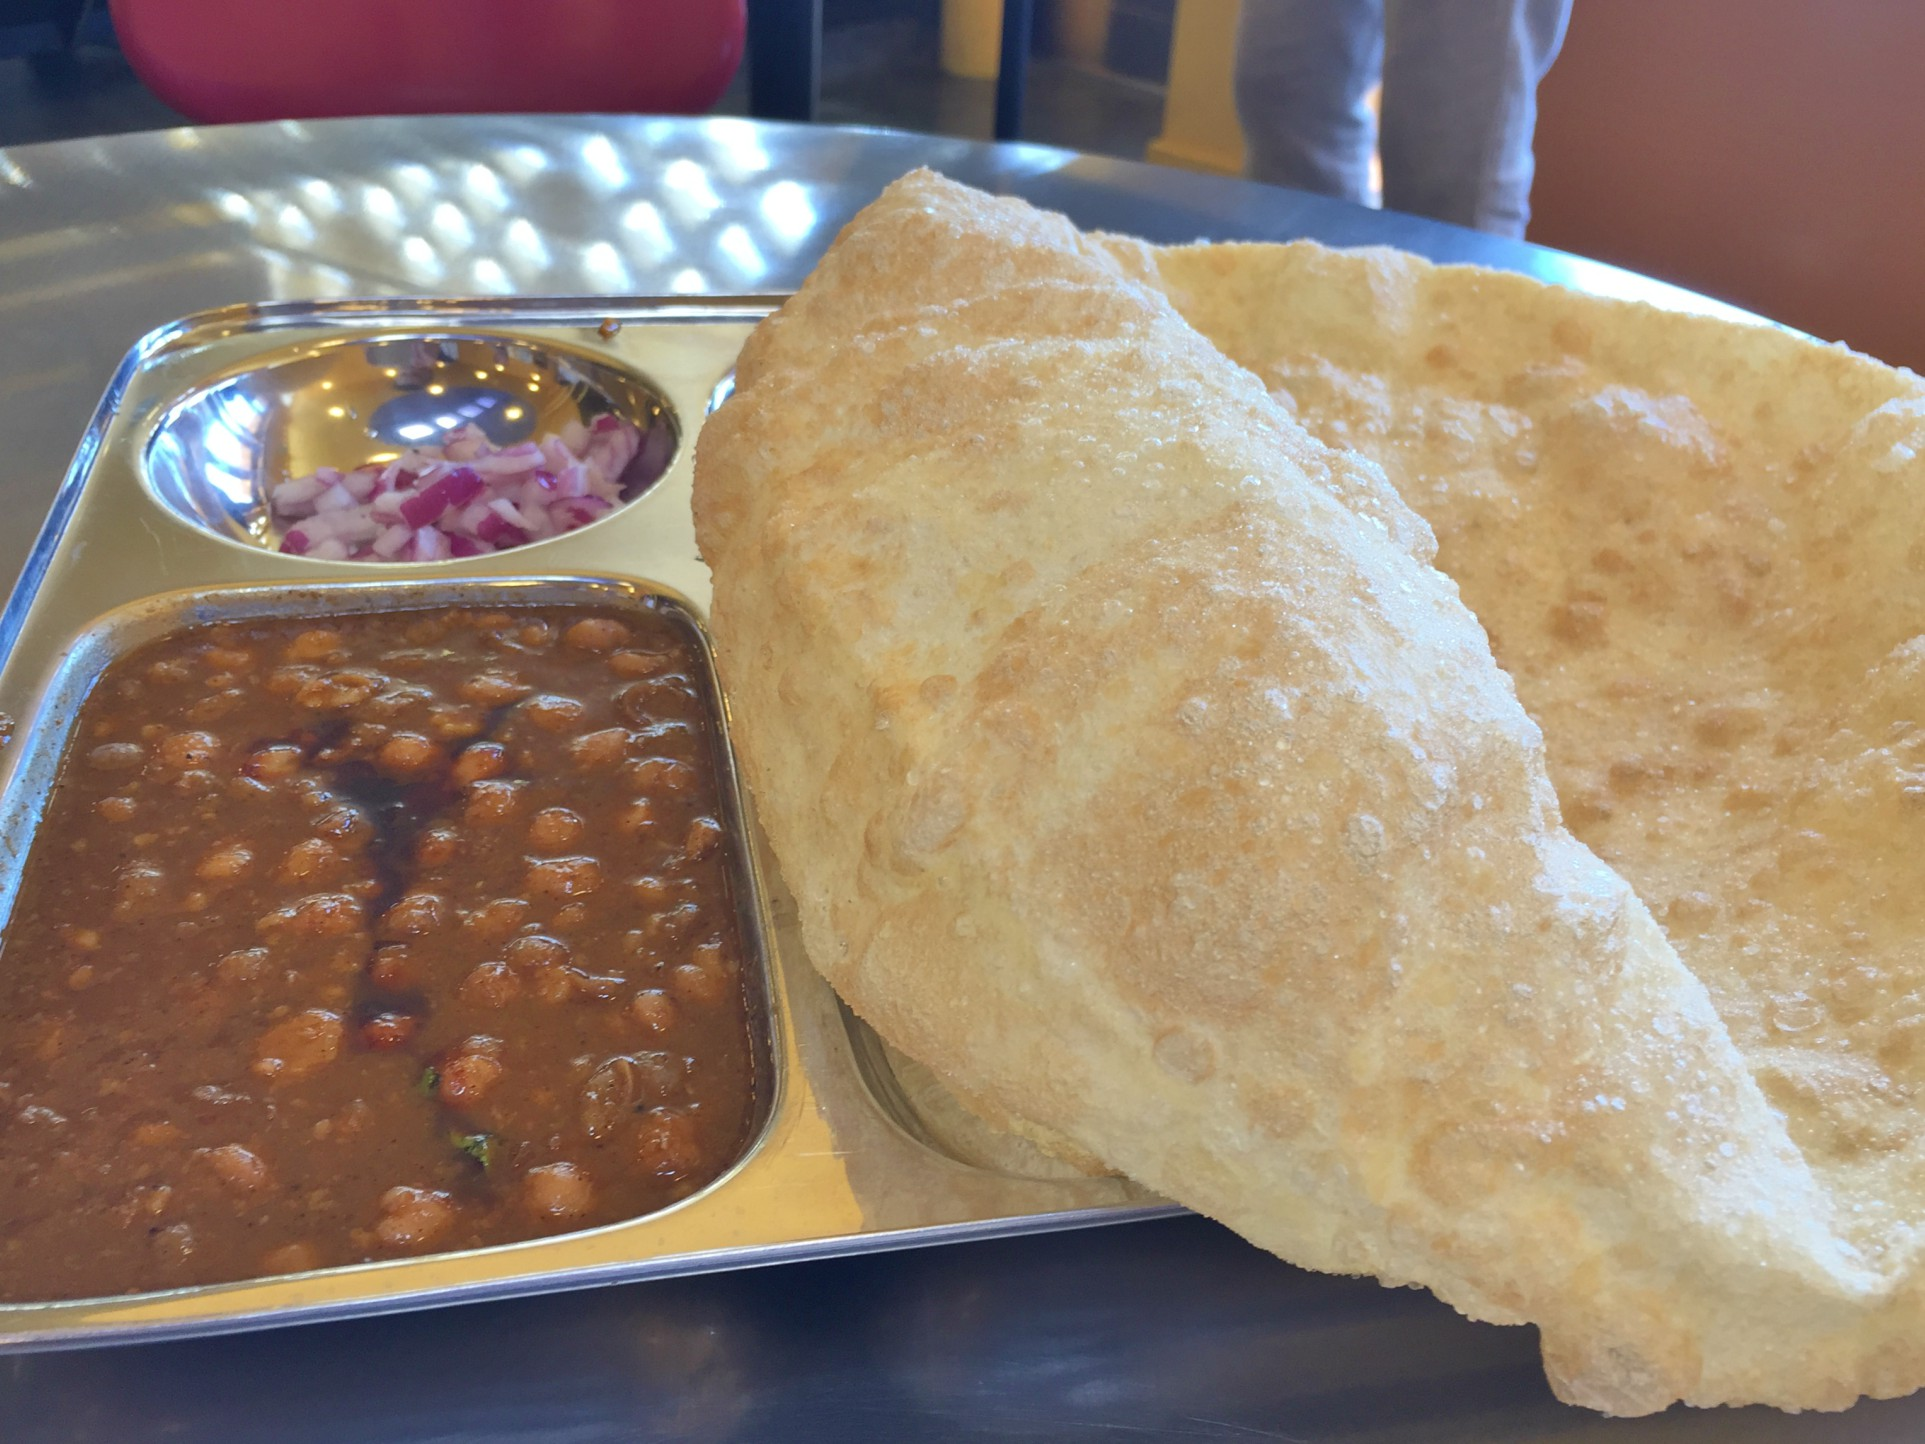 The rapidly-deflating cholle bhature makes a perfect vehicle for scooping up chana masala.